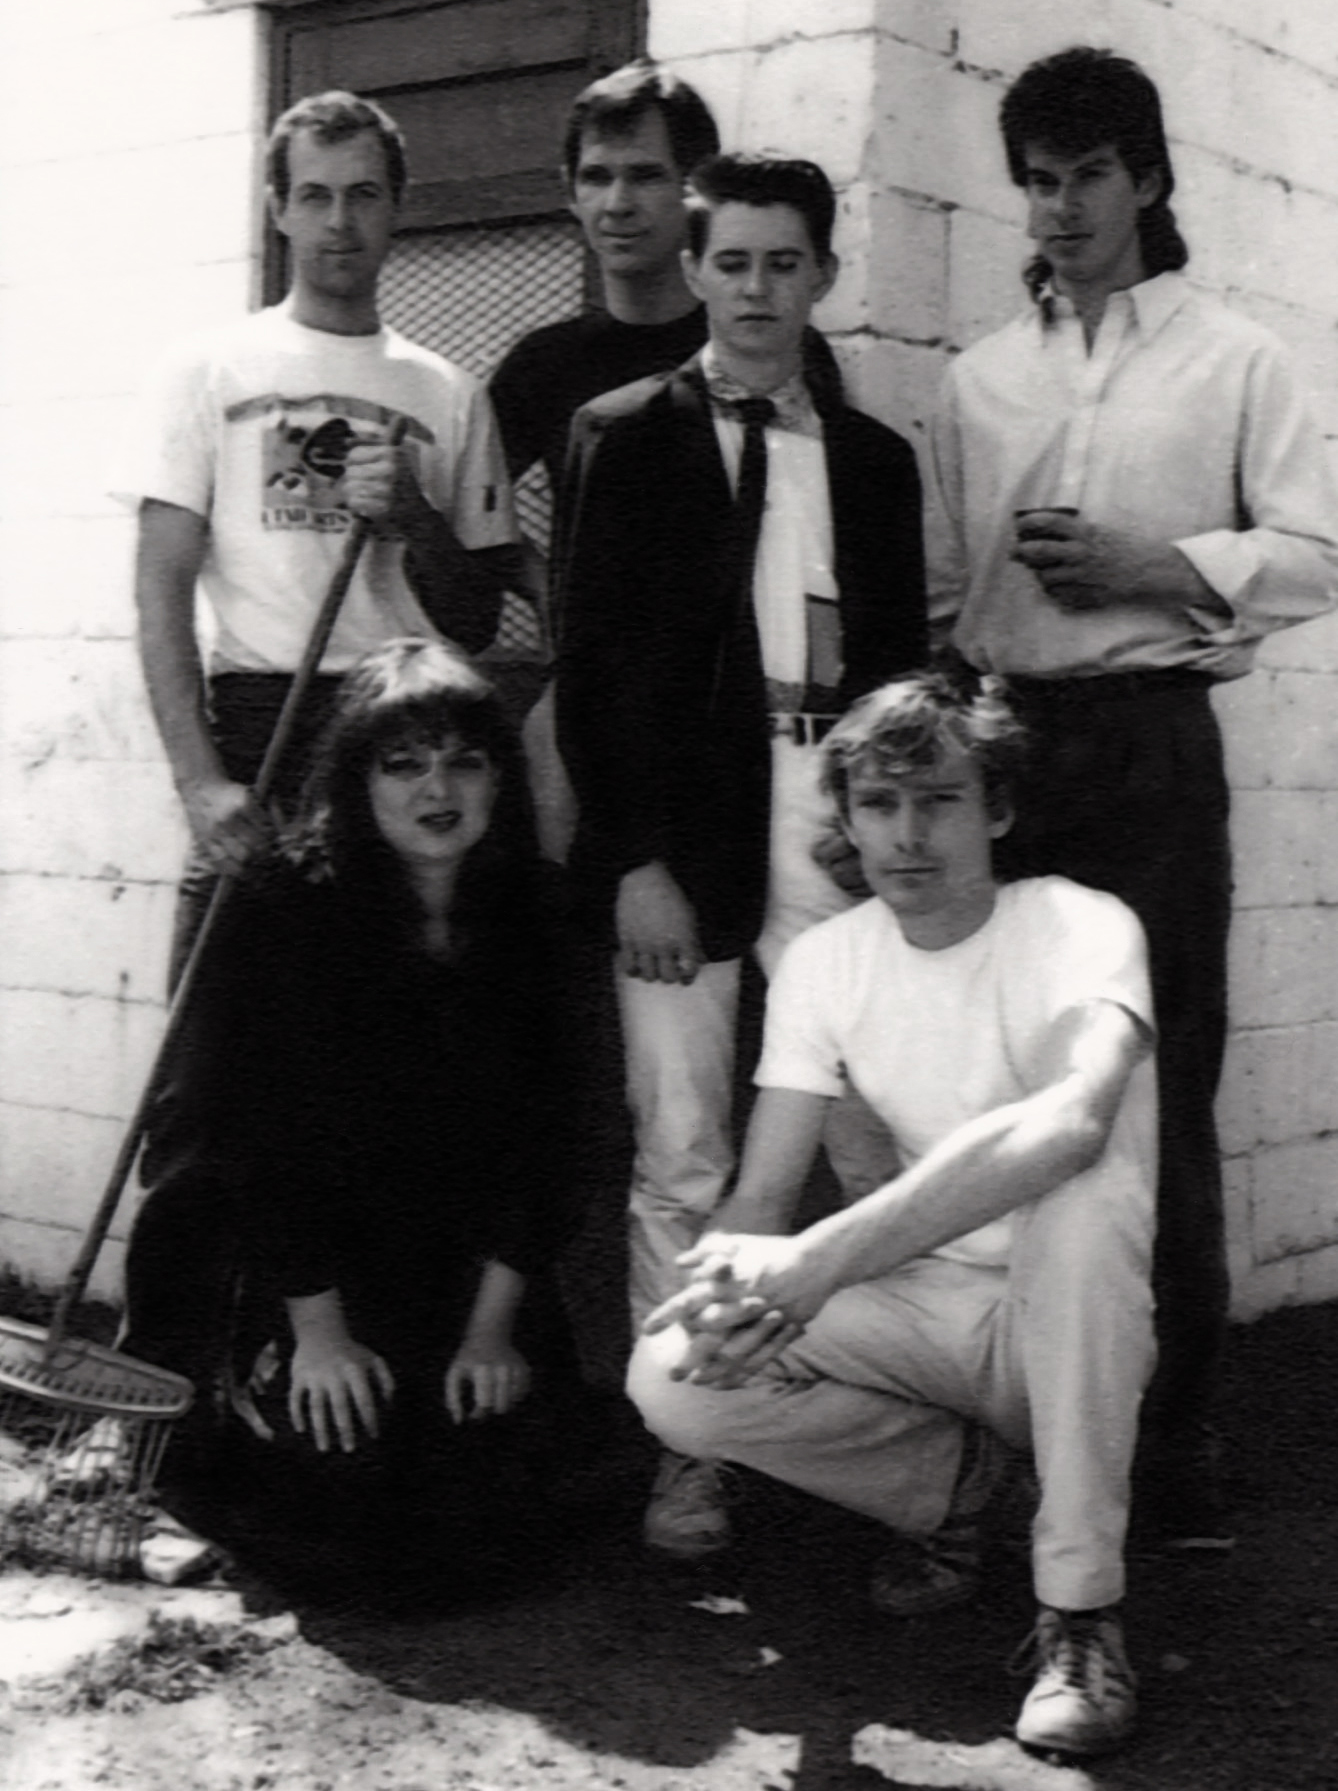 The members of the band Thinking Plague in 1987.